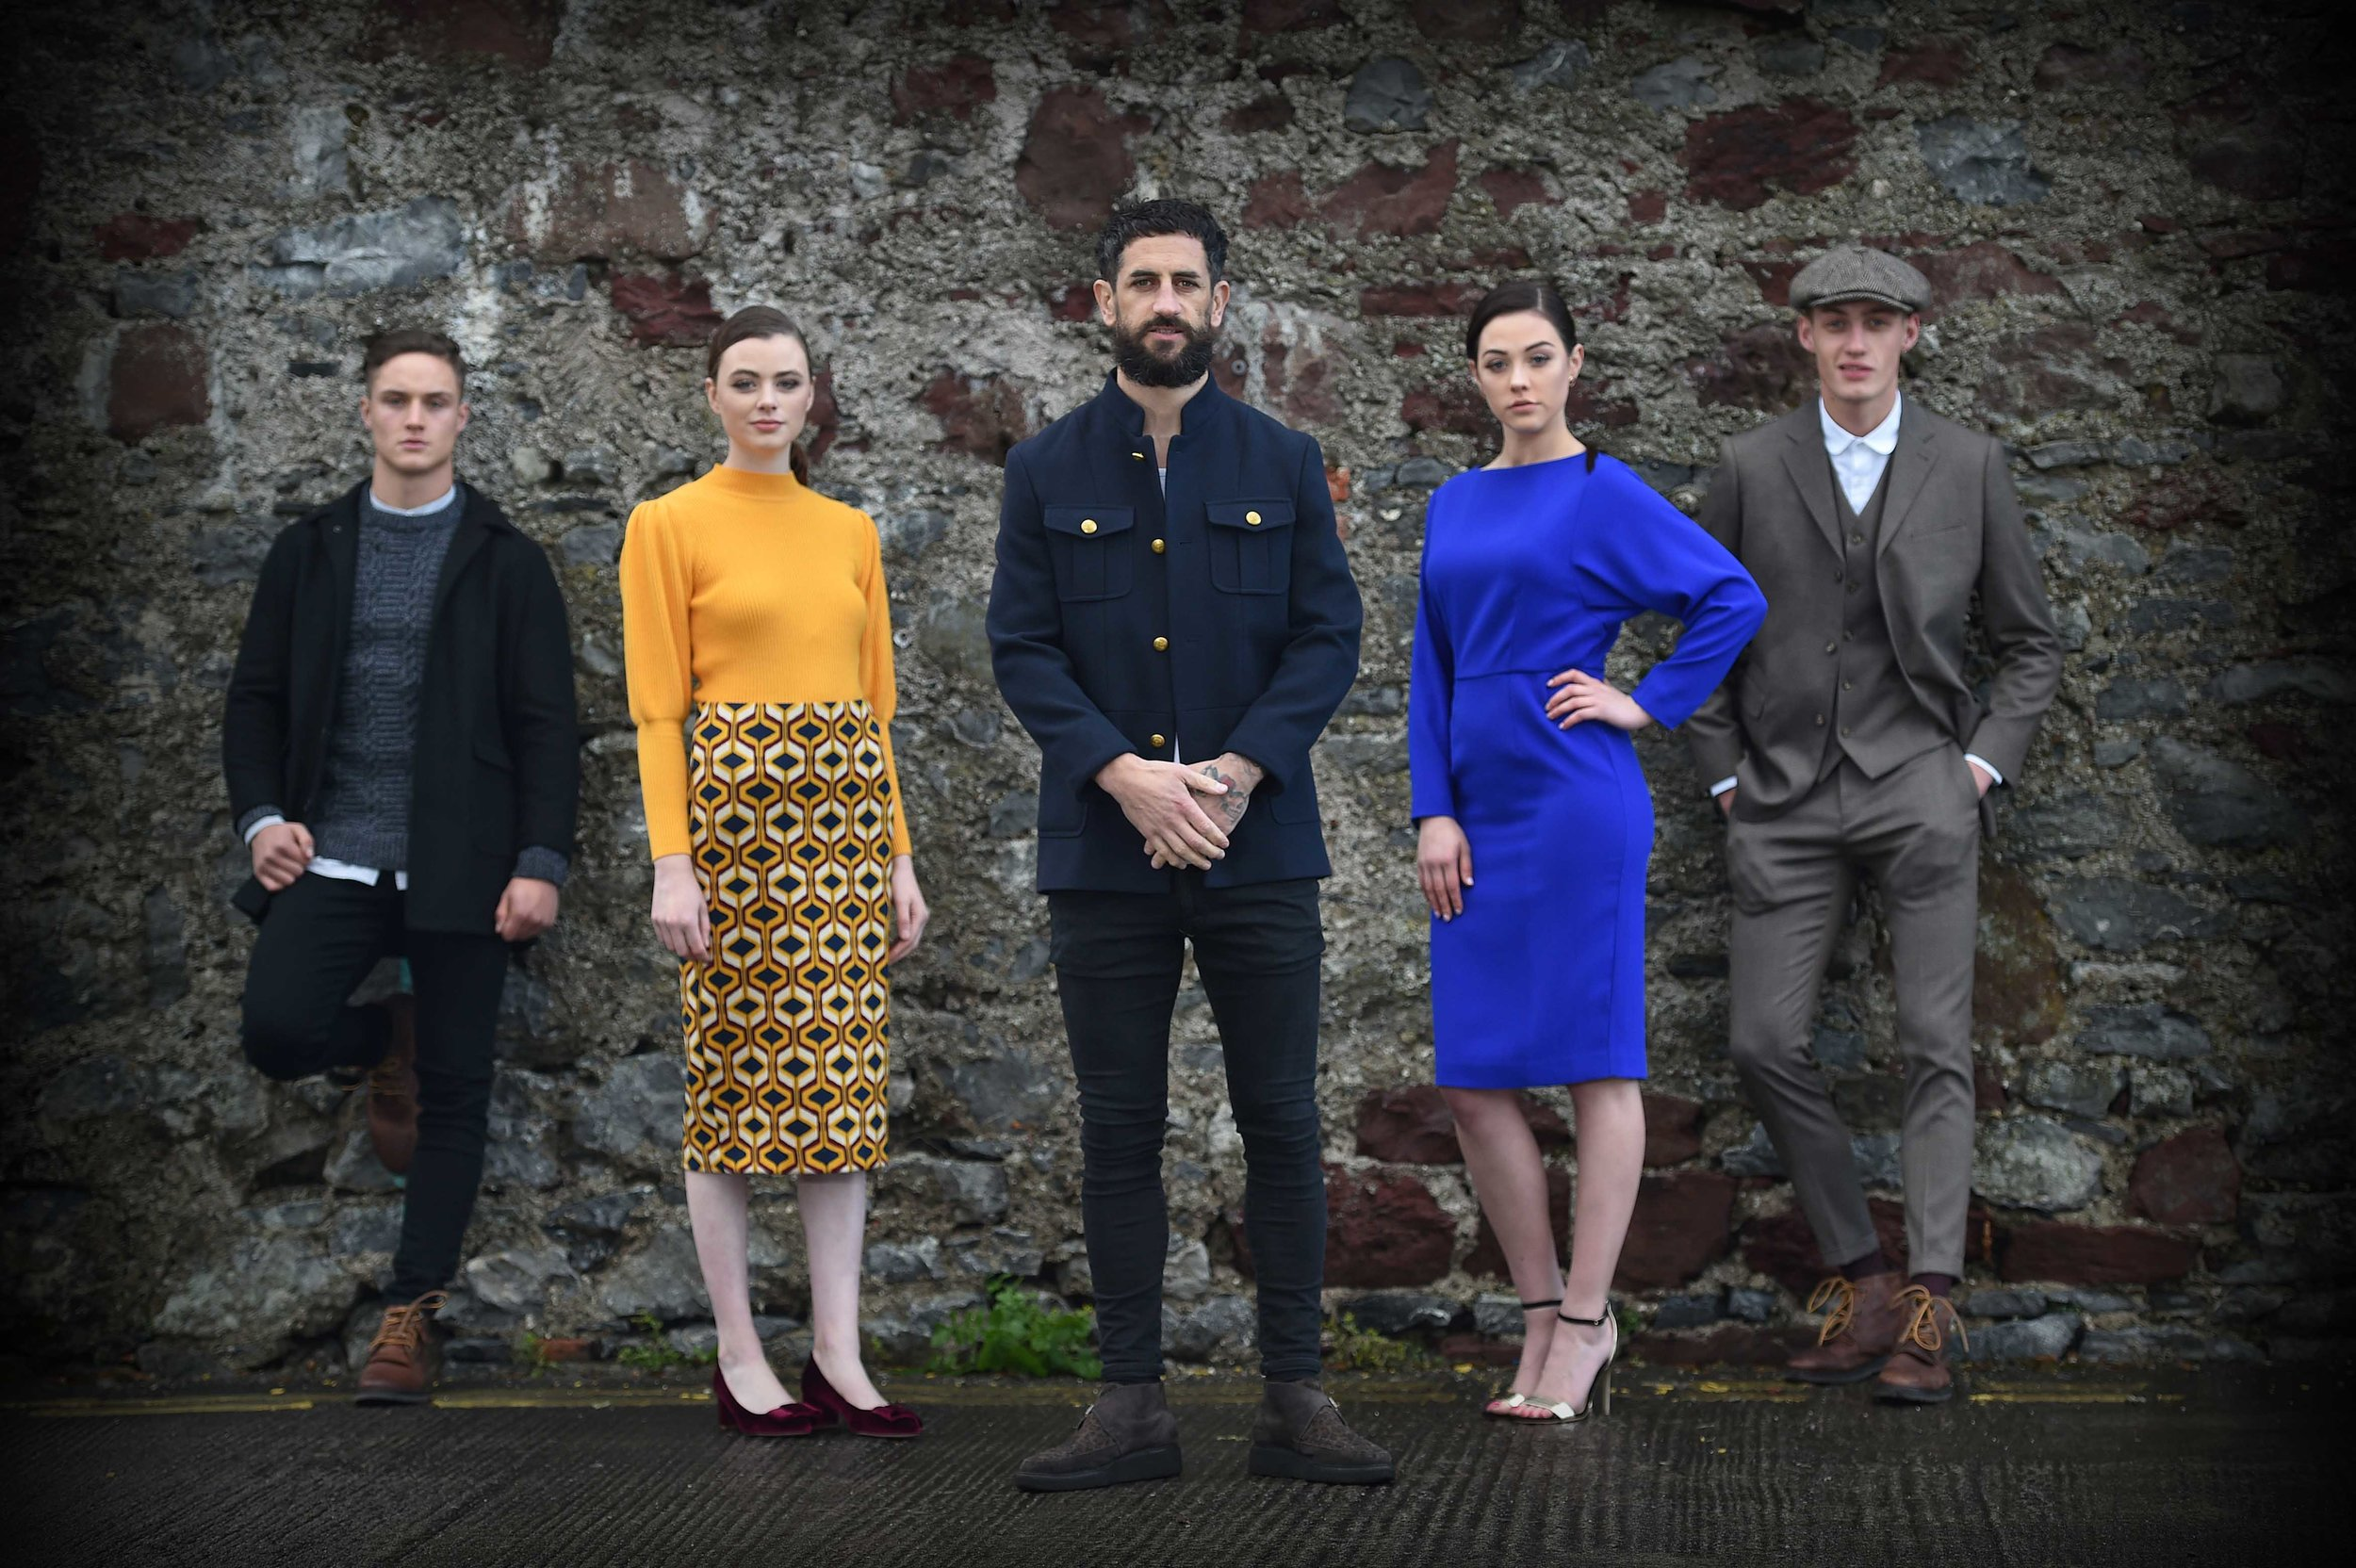 Paul Galvin A/W Shelby Collection launch - We produced the show to launch the new Paul Galvin Shelby collection A/W 17 in association with Dunnes Stores.